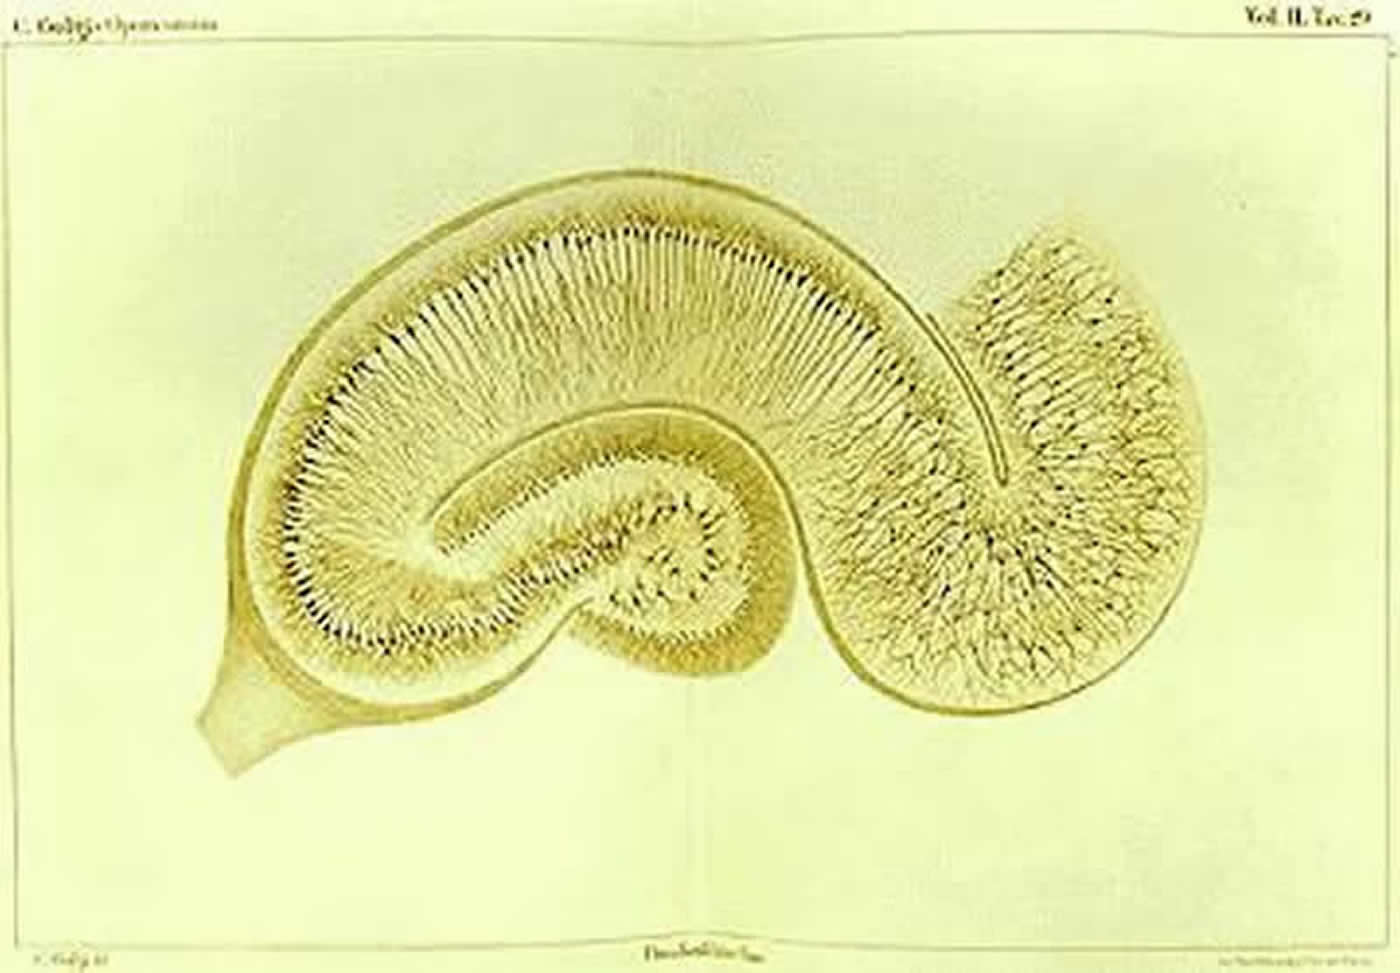 This is a drawing of a hippocampus